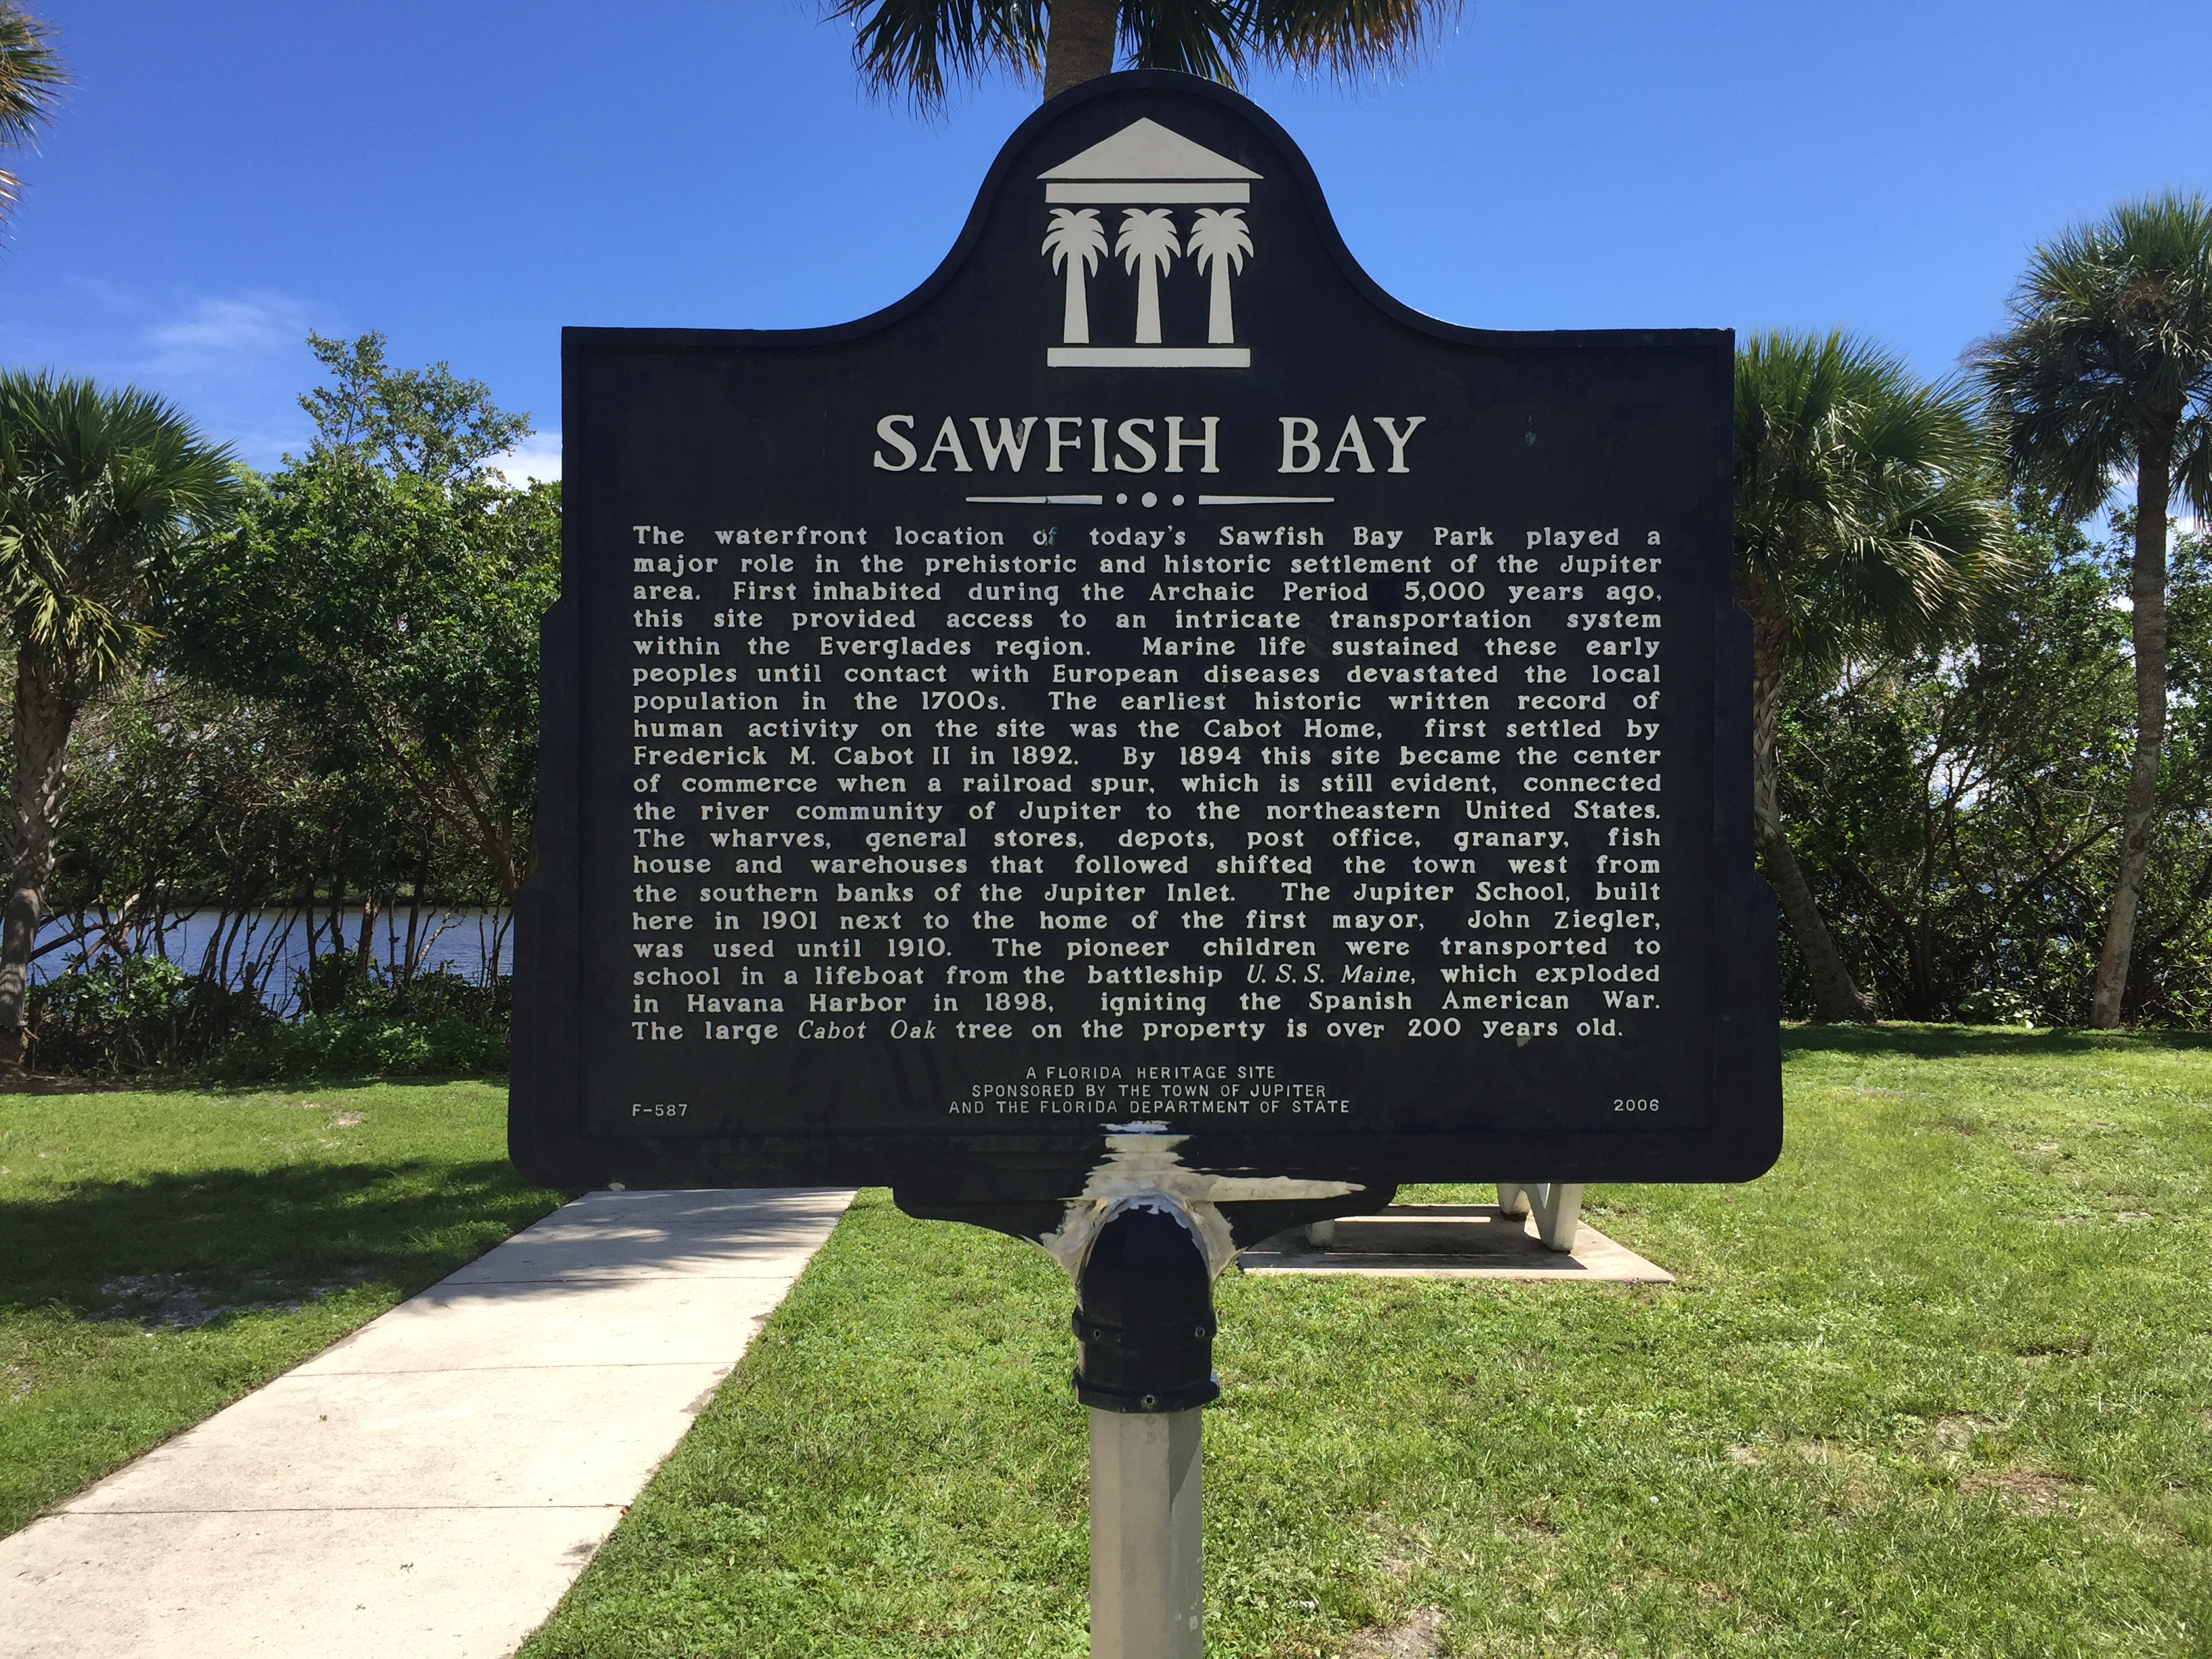 Established 25 Jan 1838 during the Second Seminole War by General Thomas S. Jesup and used to imprison more than 600 captured Seminole Indians during 1836.    The prisoners were transported to Fort Brooke (Tampa) and, from there, were finally transporte